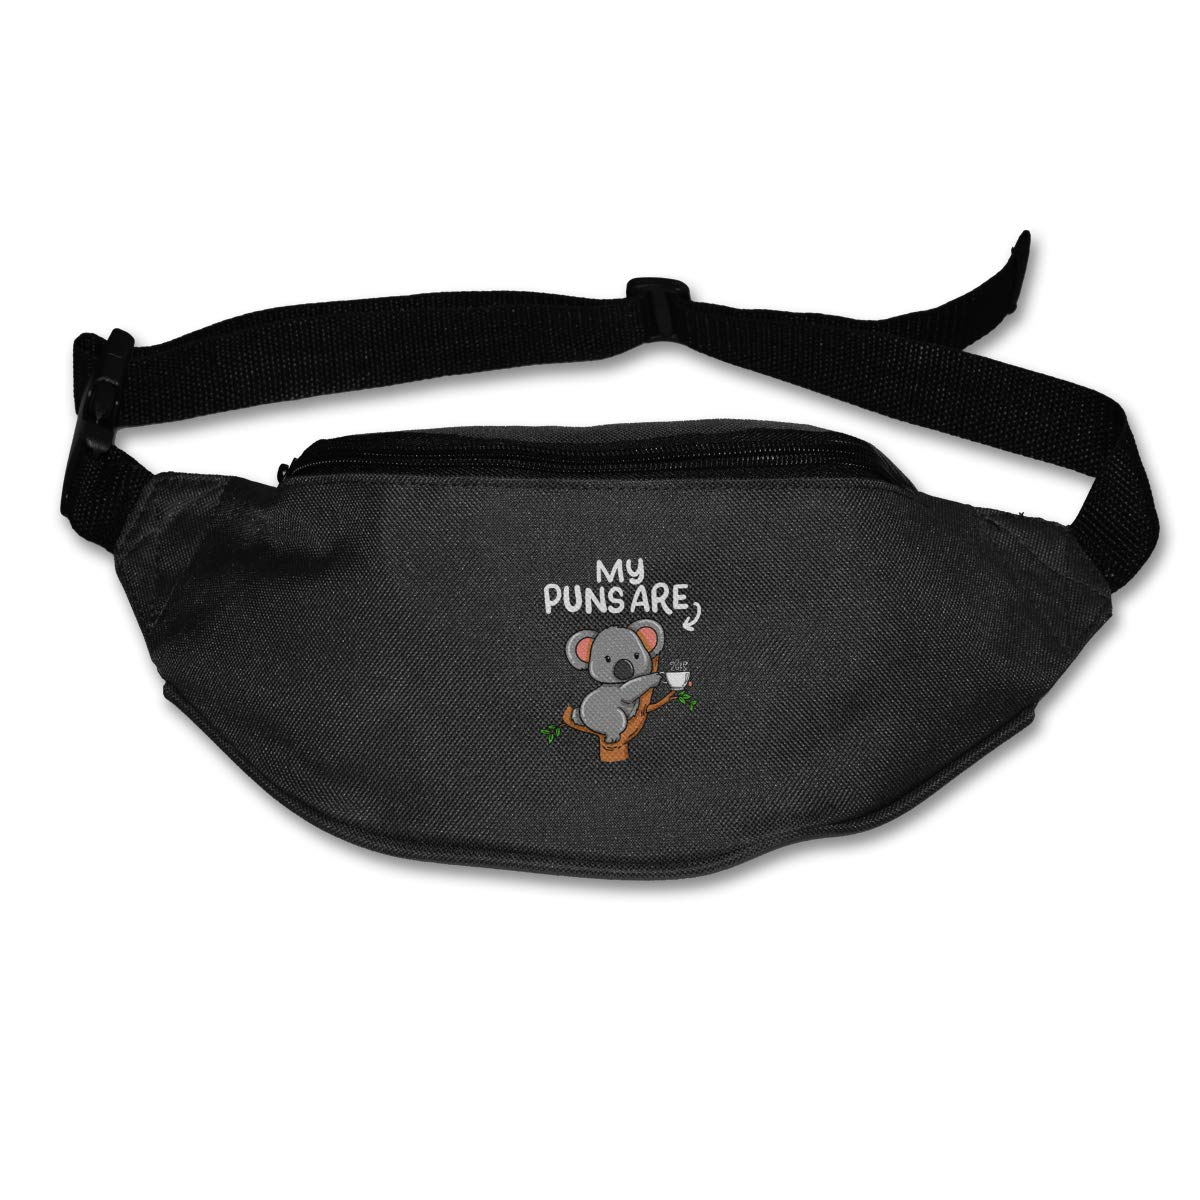 My Puns Are Koala 6 Sport Waist Pack Fanny Pack Adjustable For Hike